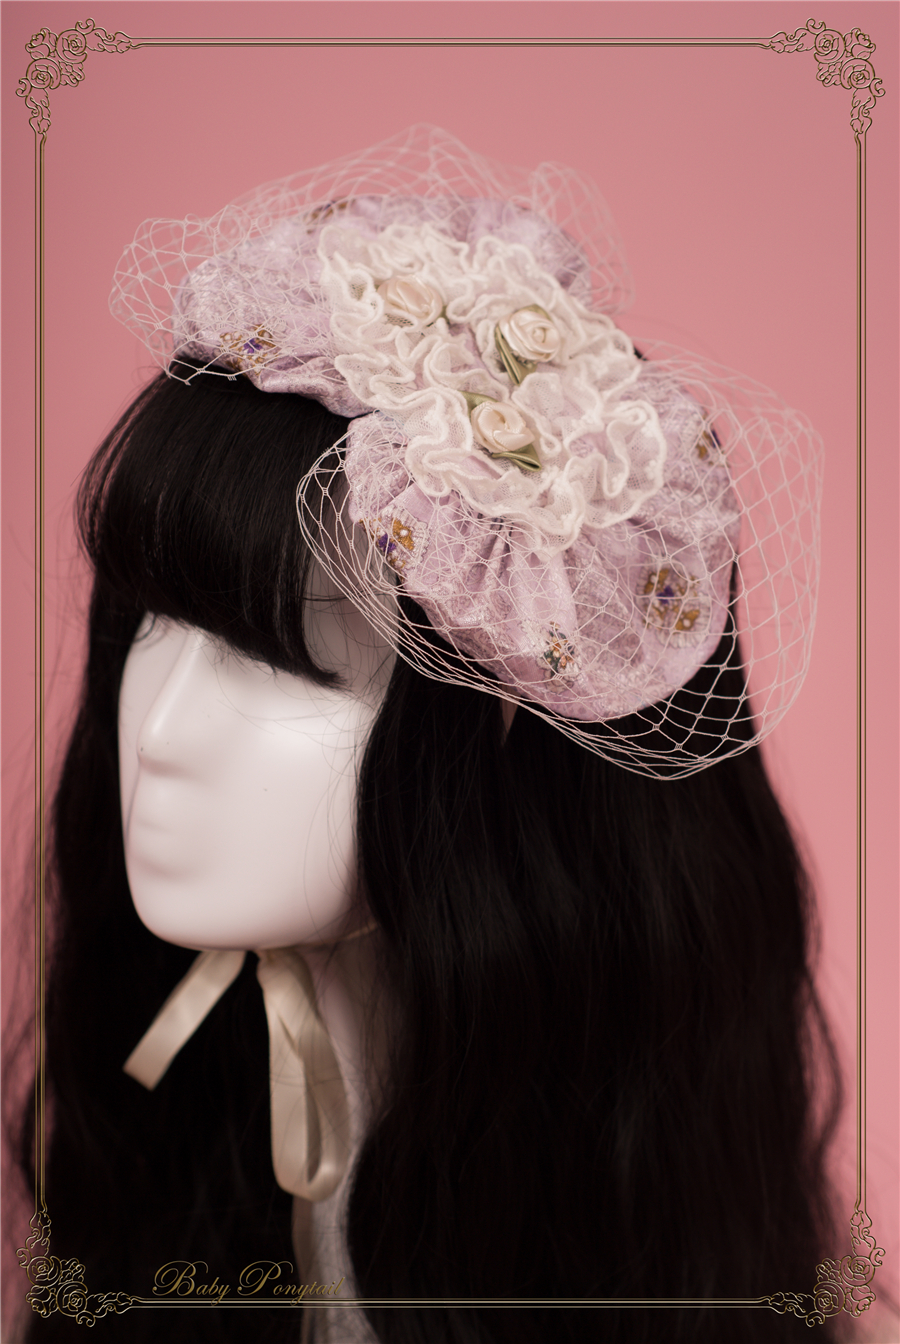 BabyPonytail_Stock Photo_My Favorite Companion_Net Head Piece_5.jpg